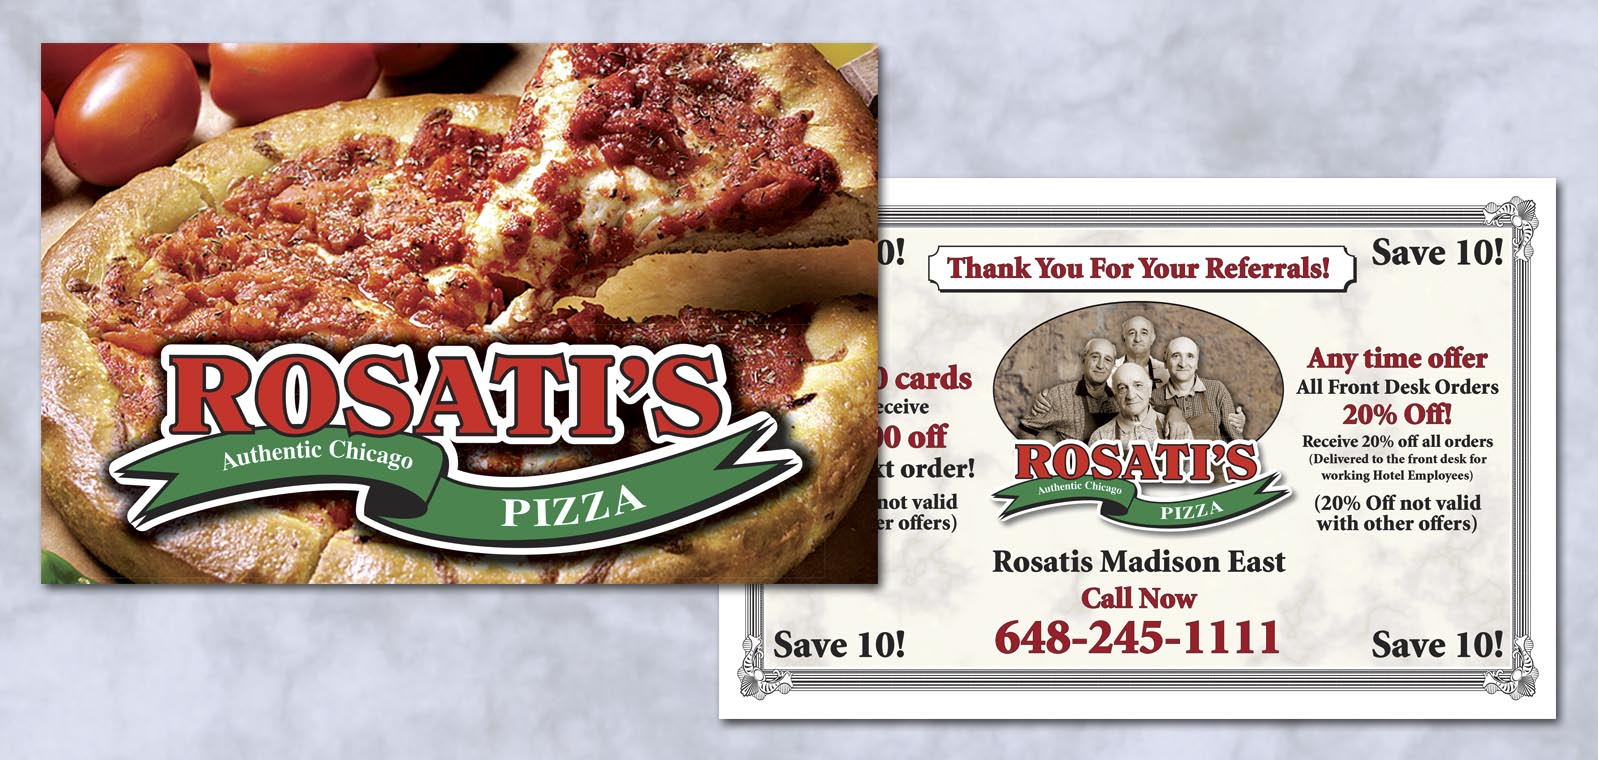 Postcard Graphic Design for Rosatis Pizza by Roselle Graphic Designer Controlled Color, Inc.